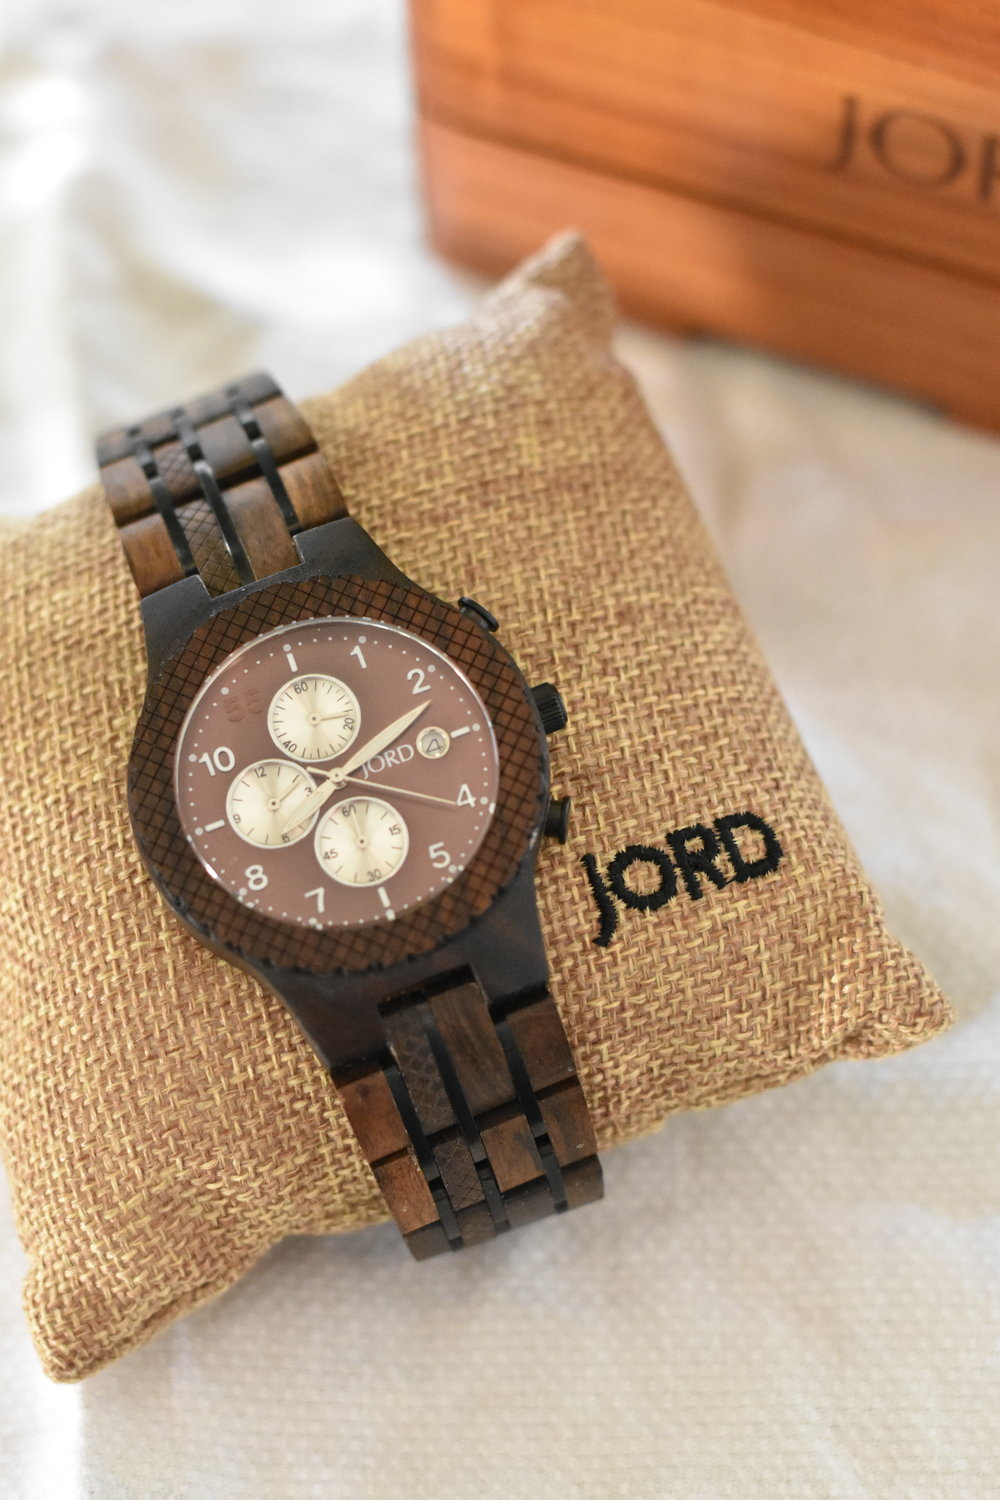 Fathers Day Gift Wooden Watch Jord